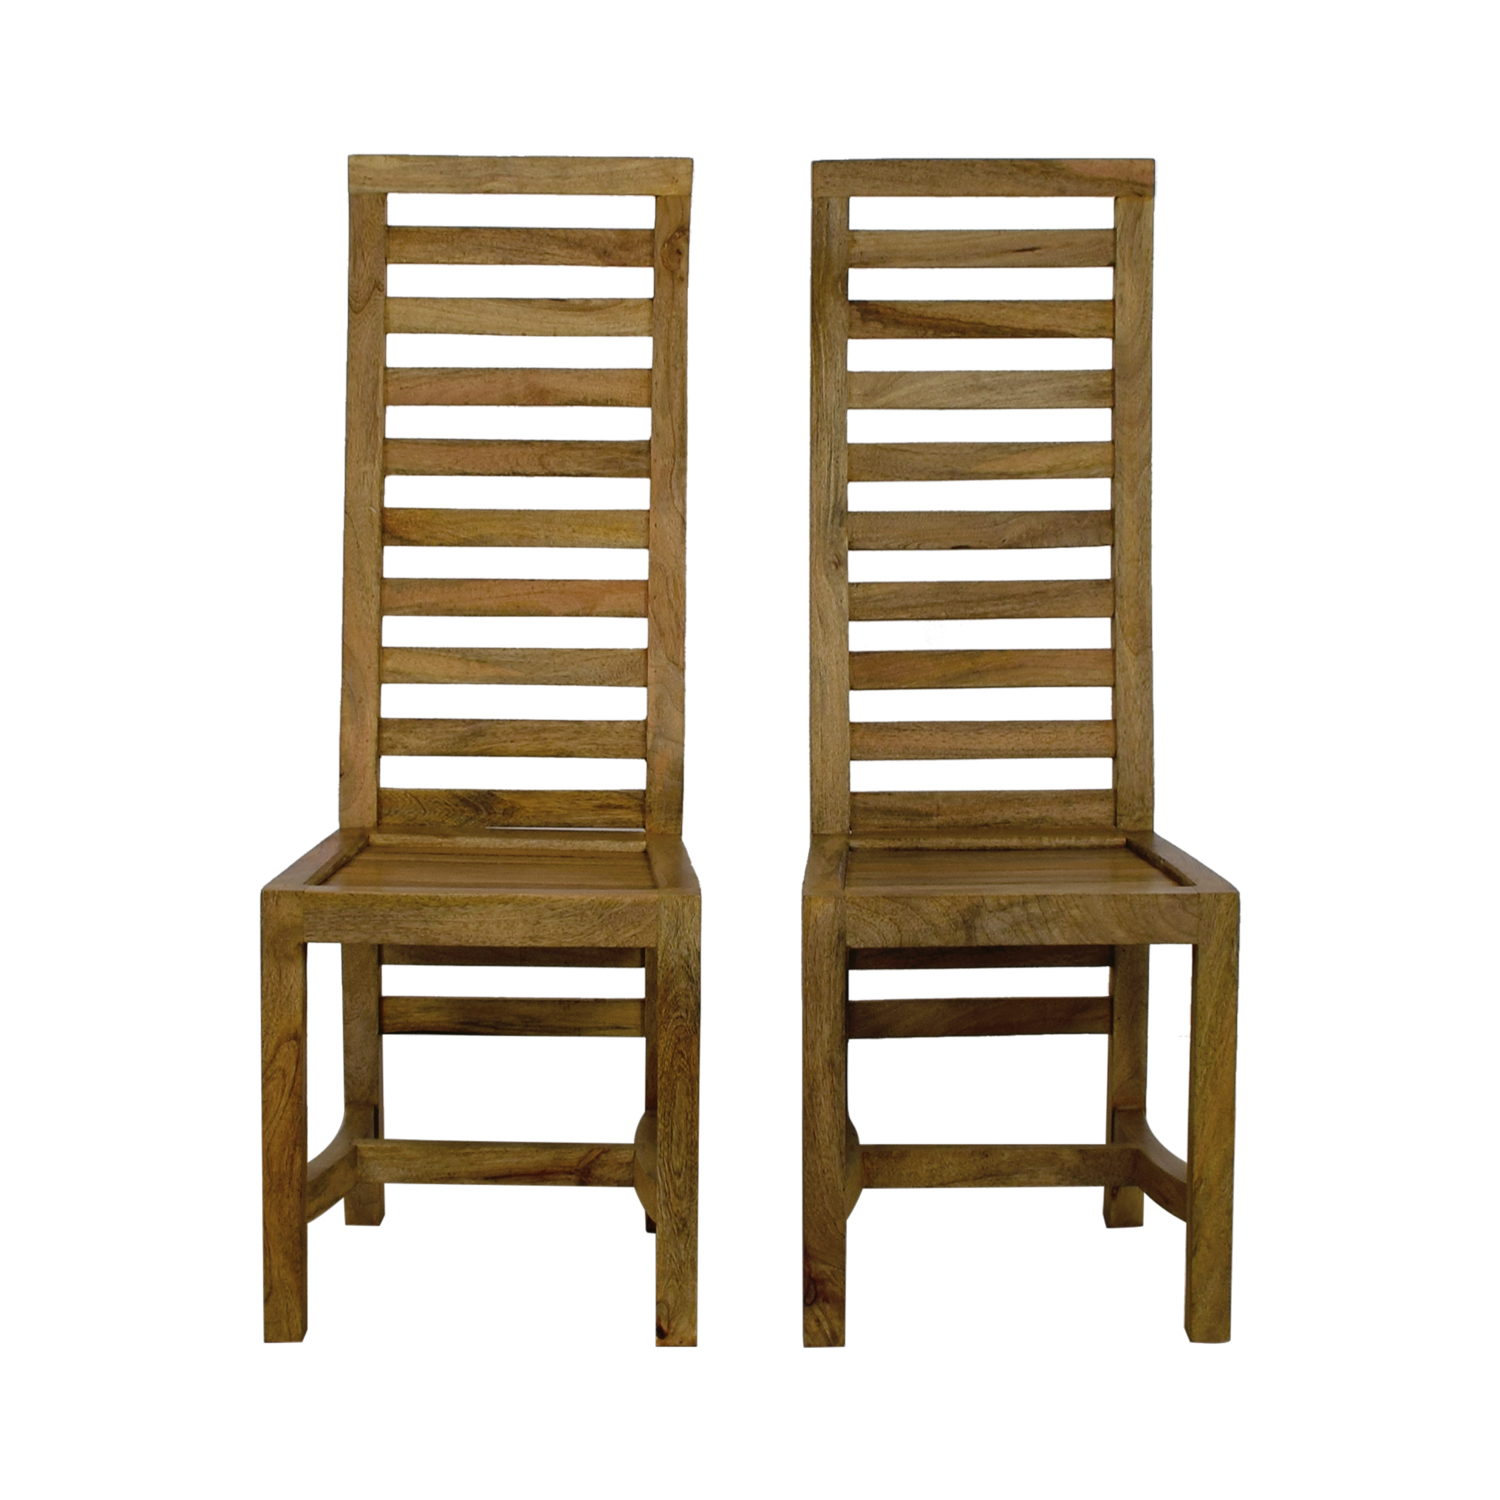 Nadeau Rustic High Back Wooden Chairs Accent